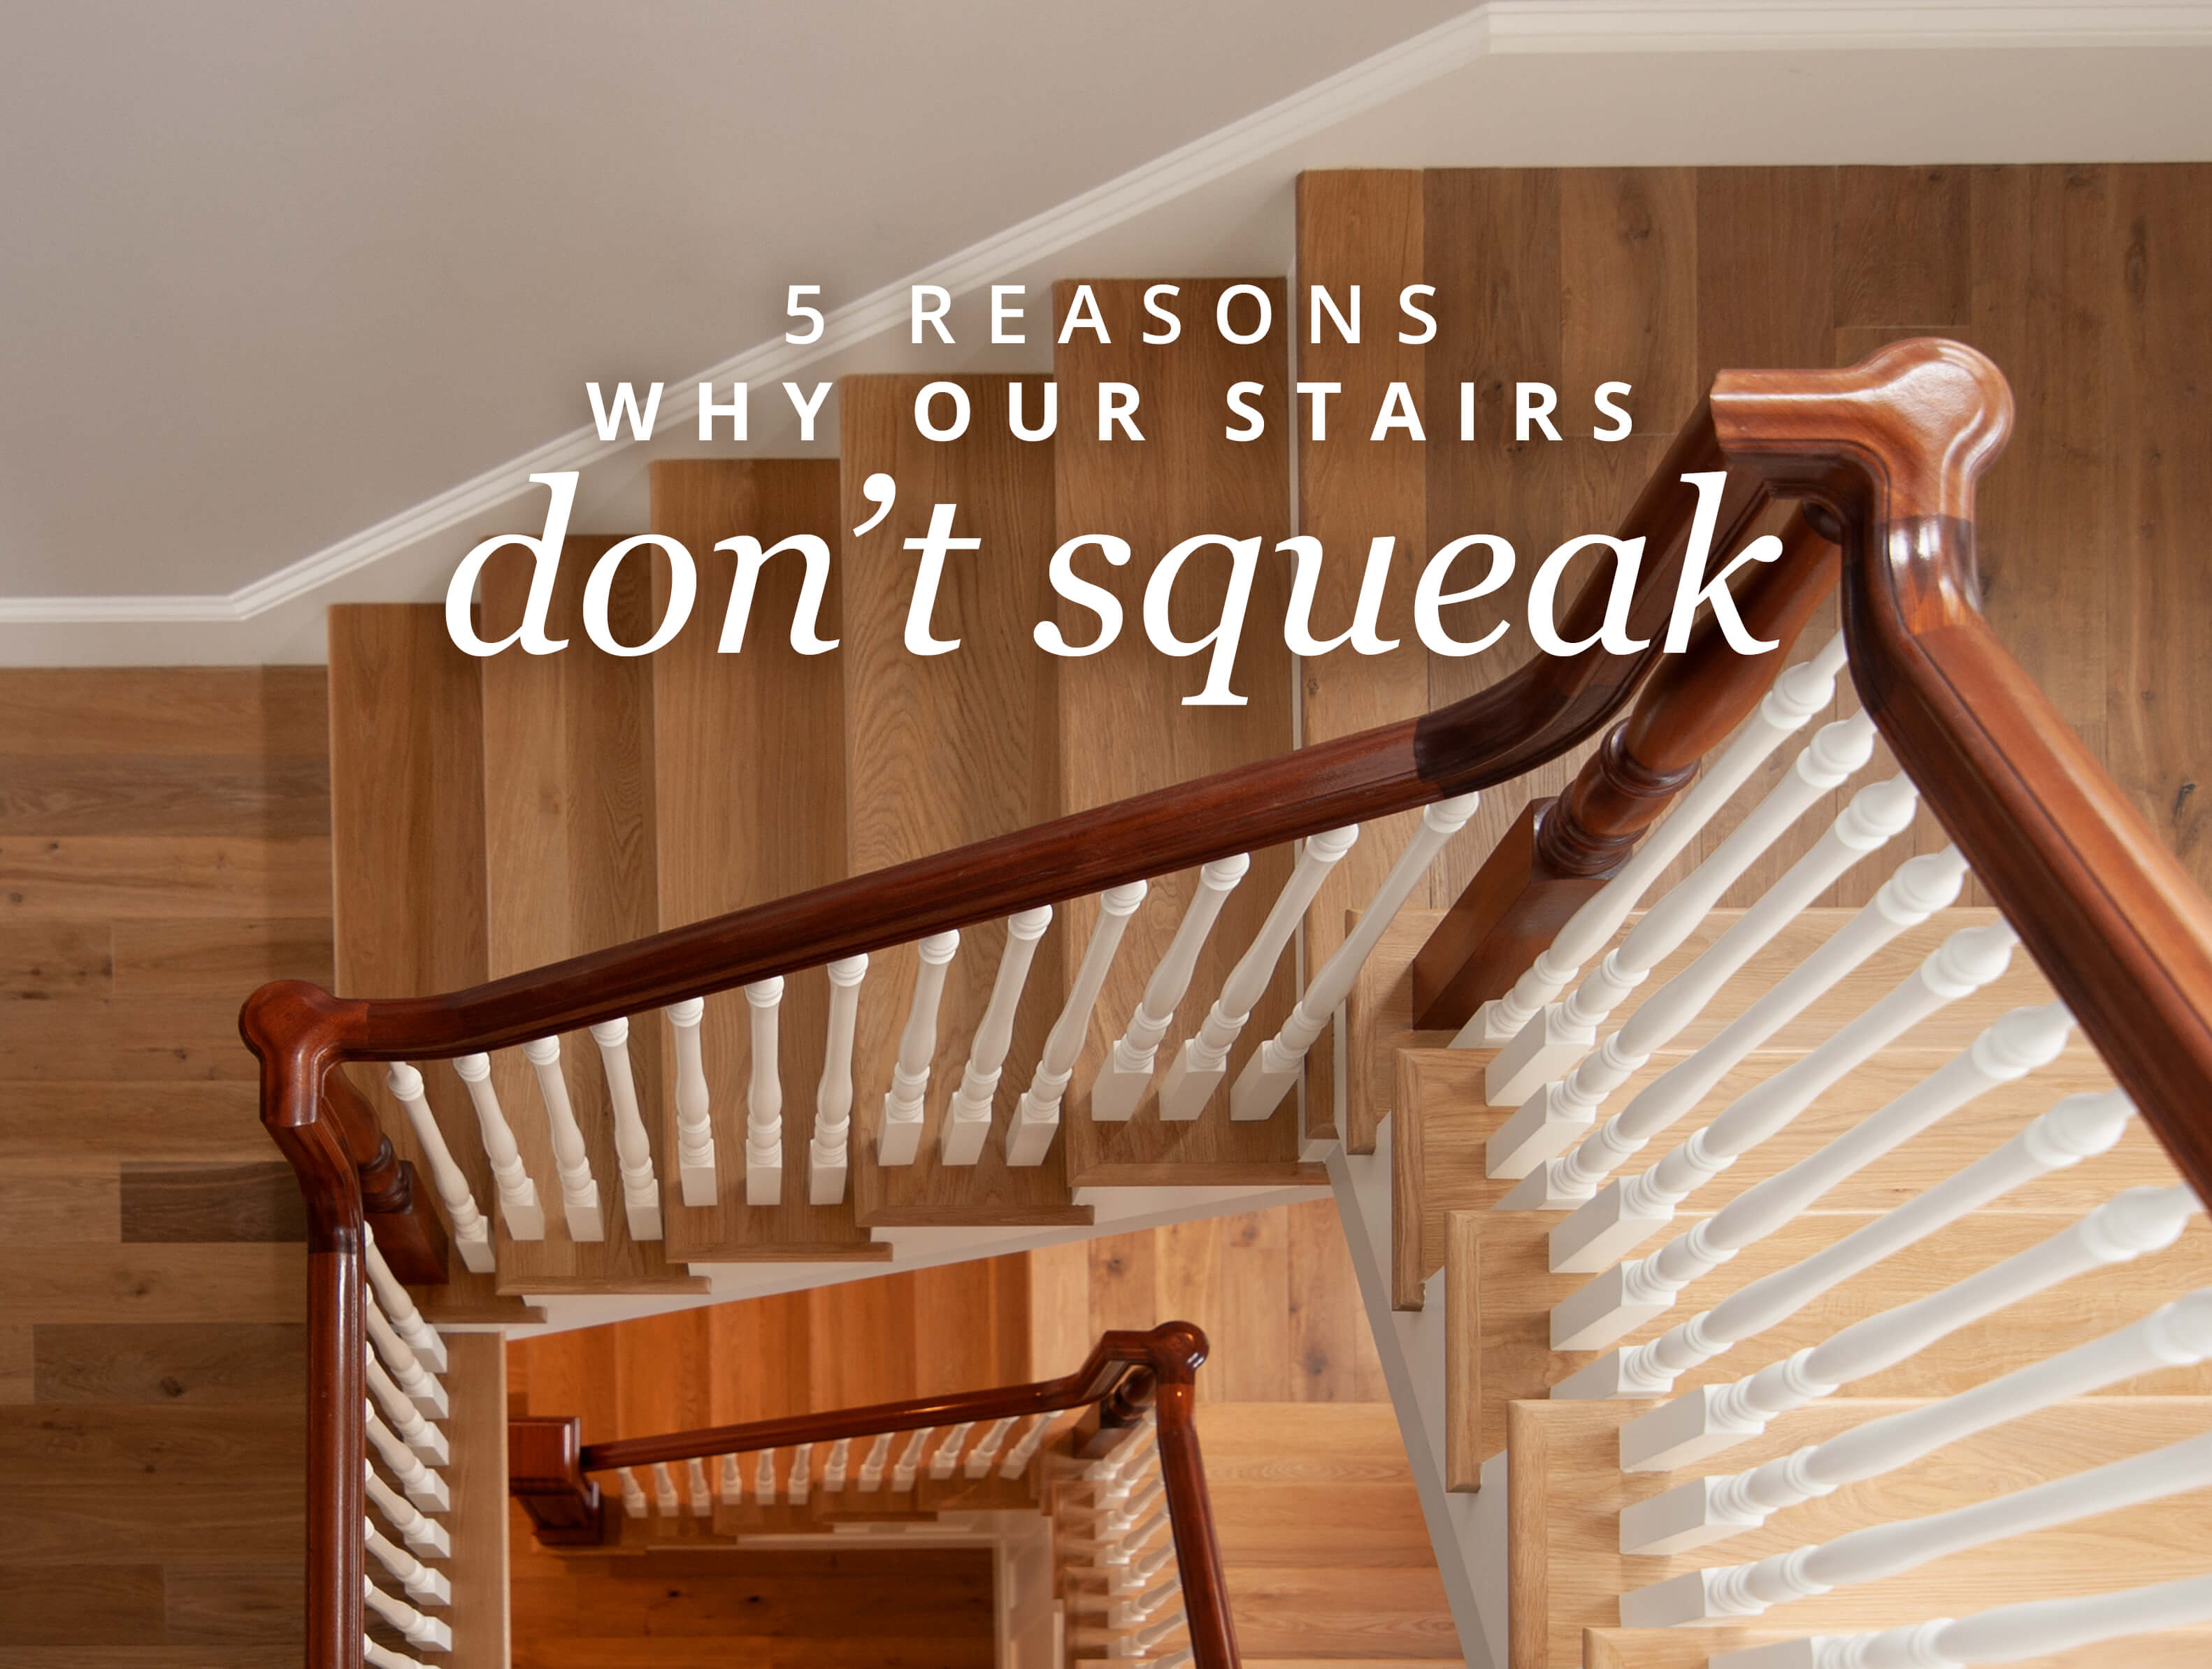 5 Reasons Why Our Stairs Don't Squeak